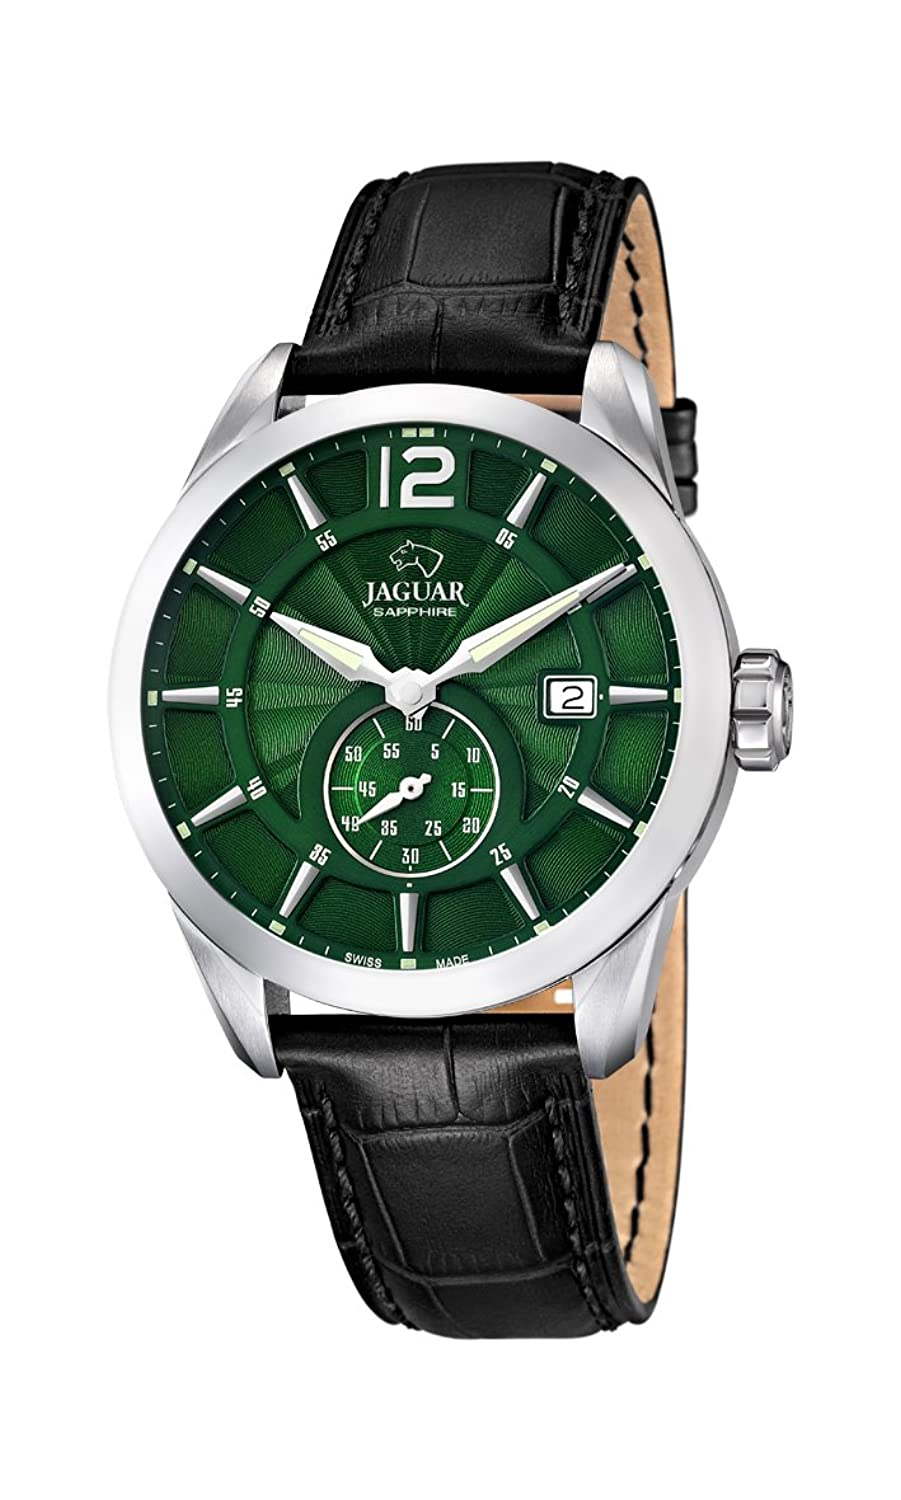 Jaguar Watches Herren-Armbanduhr XL Analog Quarz Leder J663-3